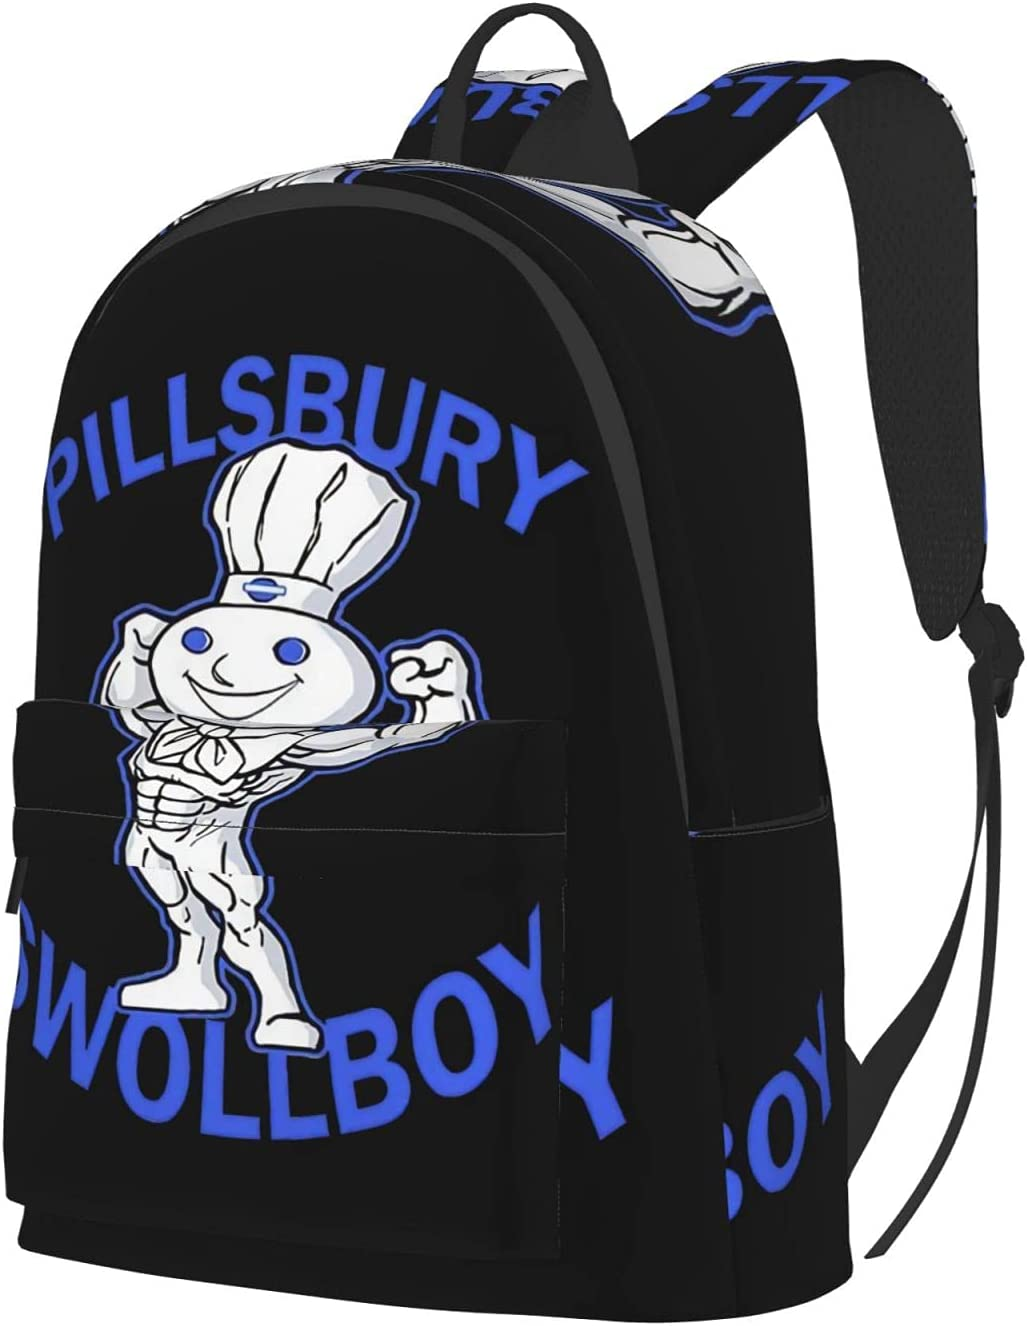 Pillsbury Doughboy Men's Fashion Large-Capacity Women Special Campaign Backpacks Japan Maker New